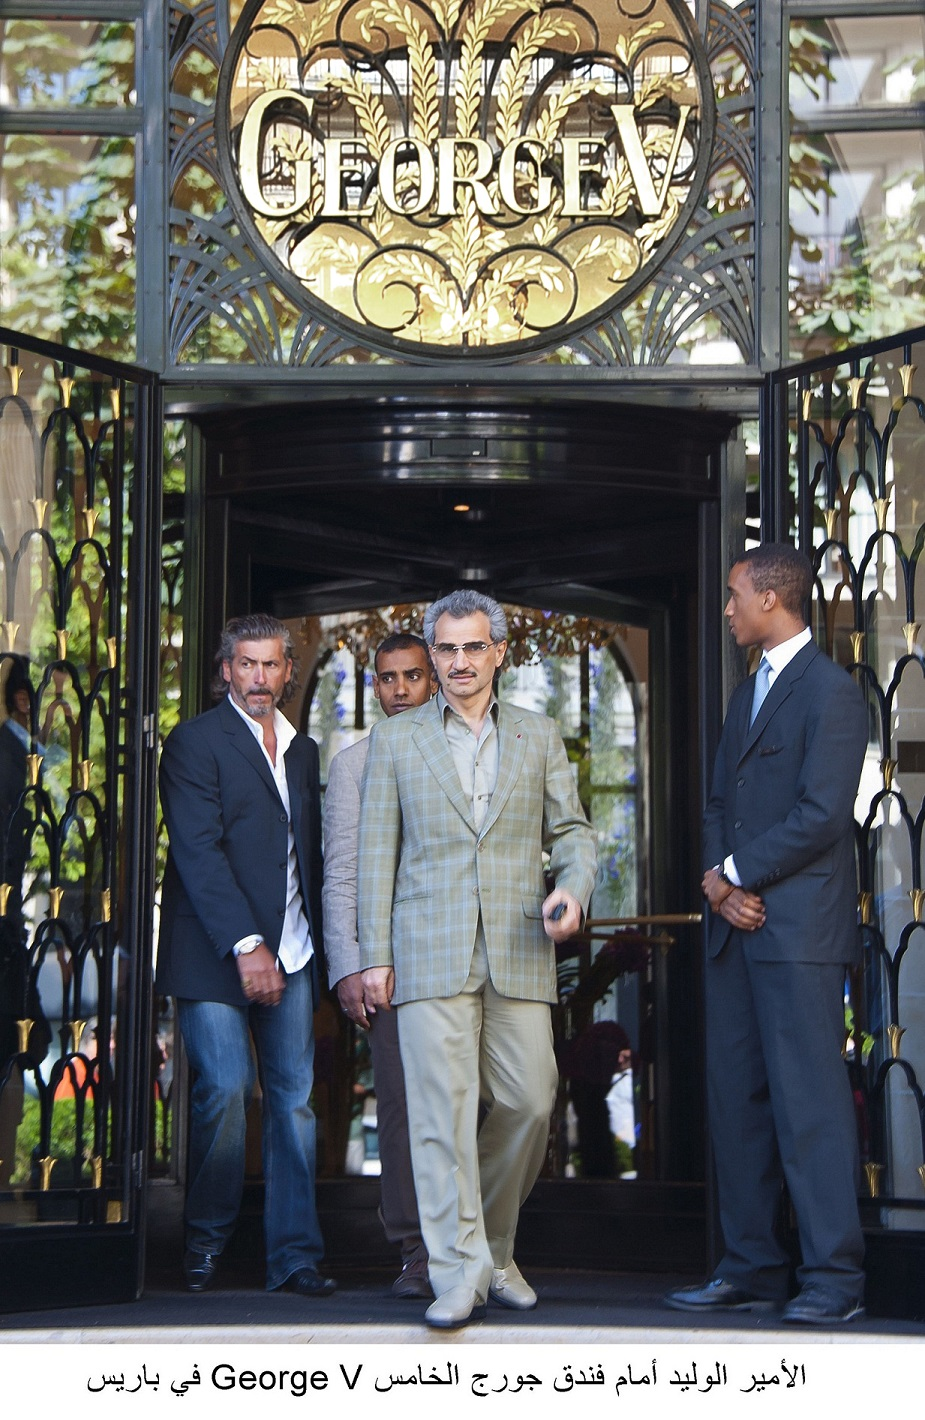 Prince Alwaleed at the George V, Paris, April 2016 A